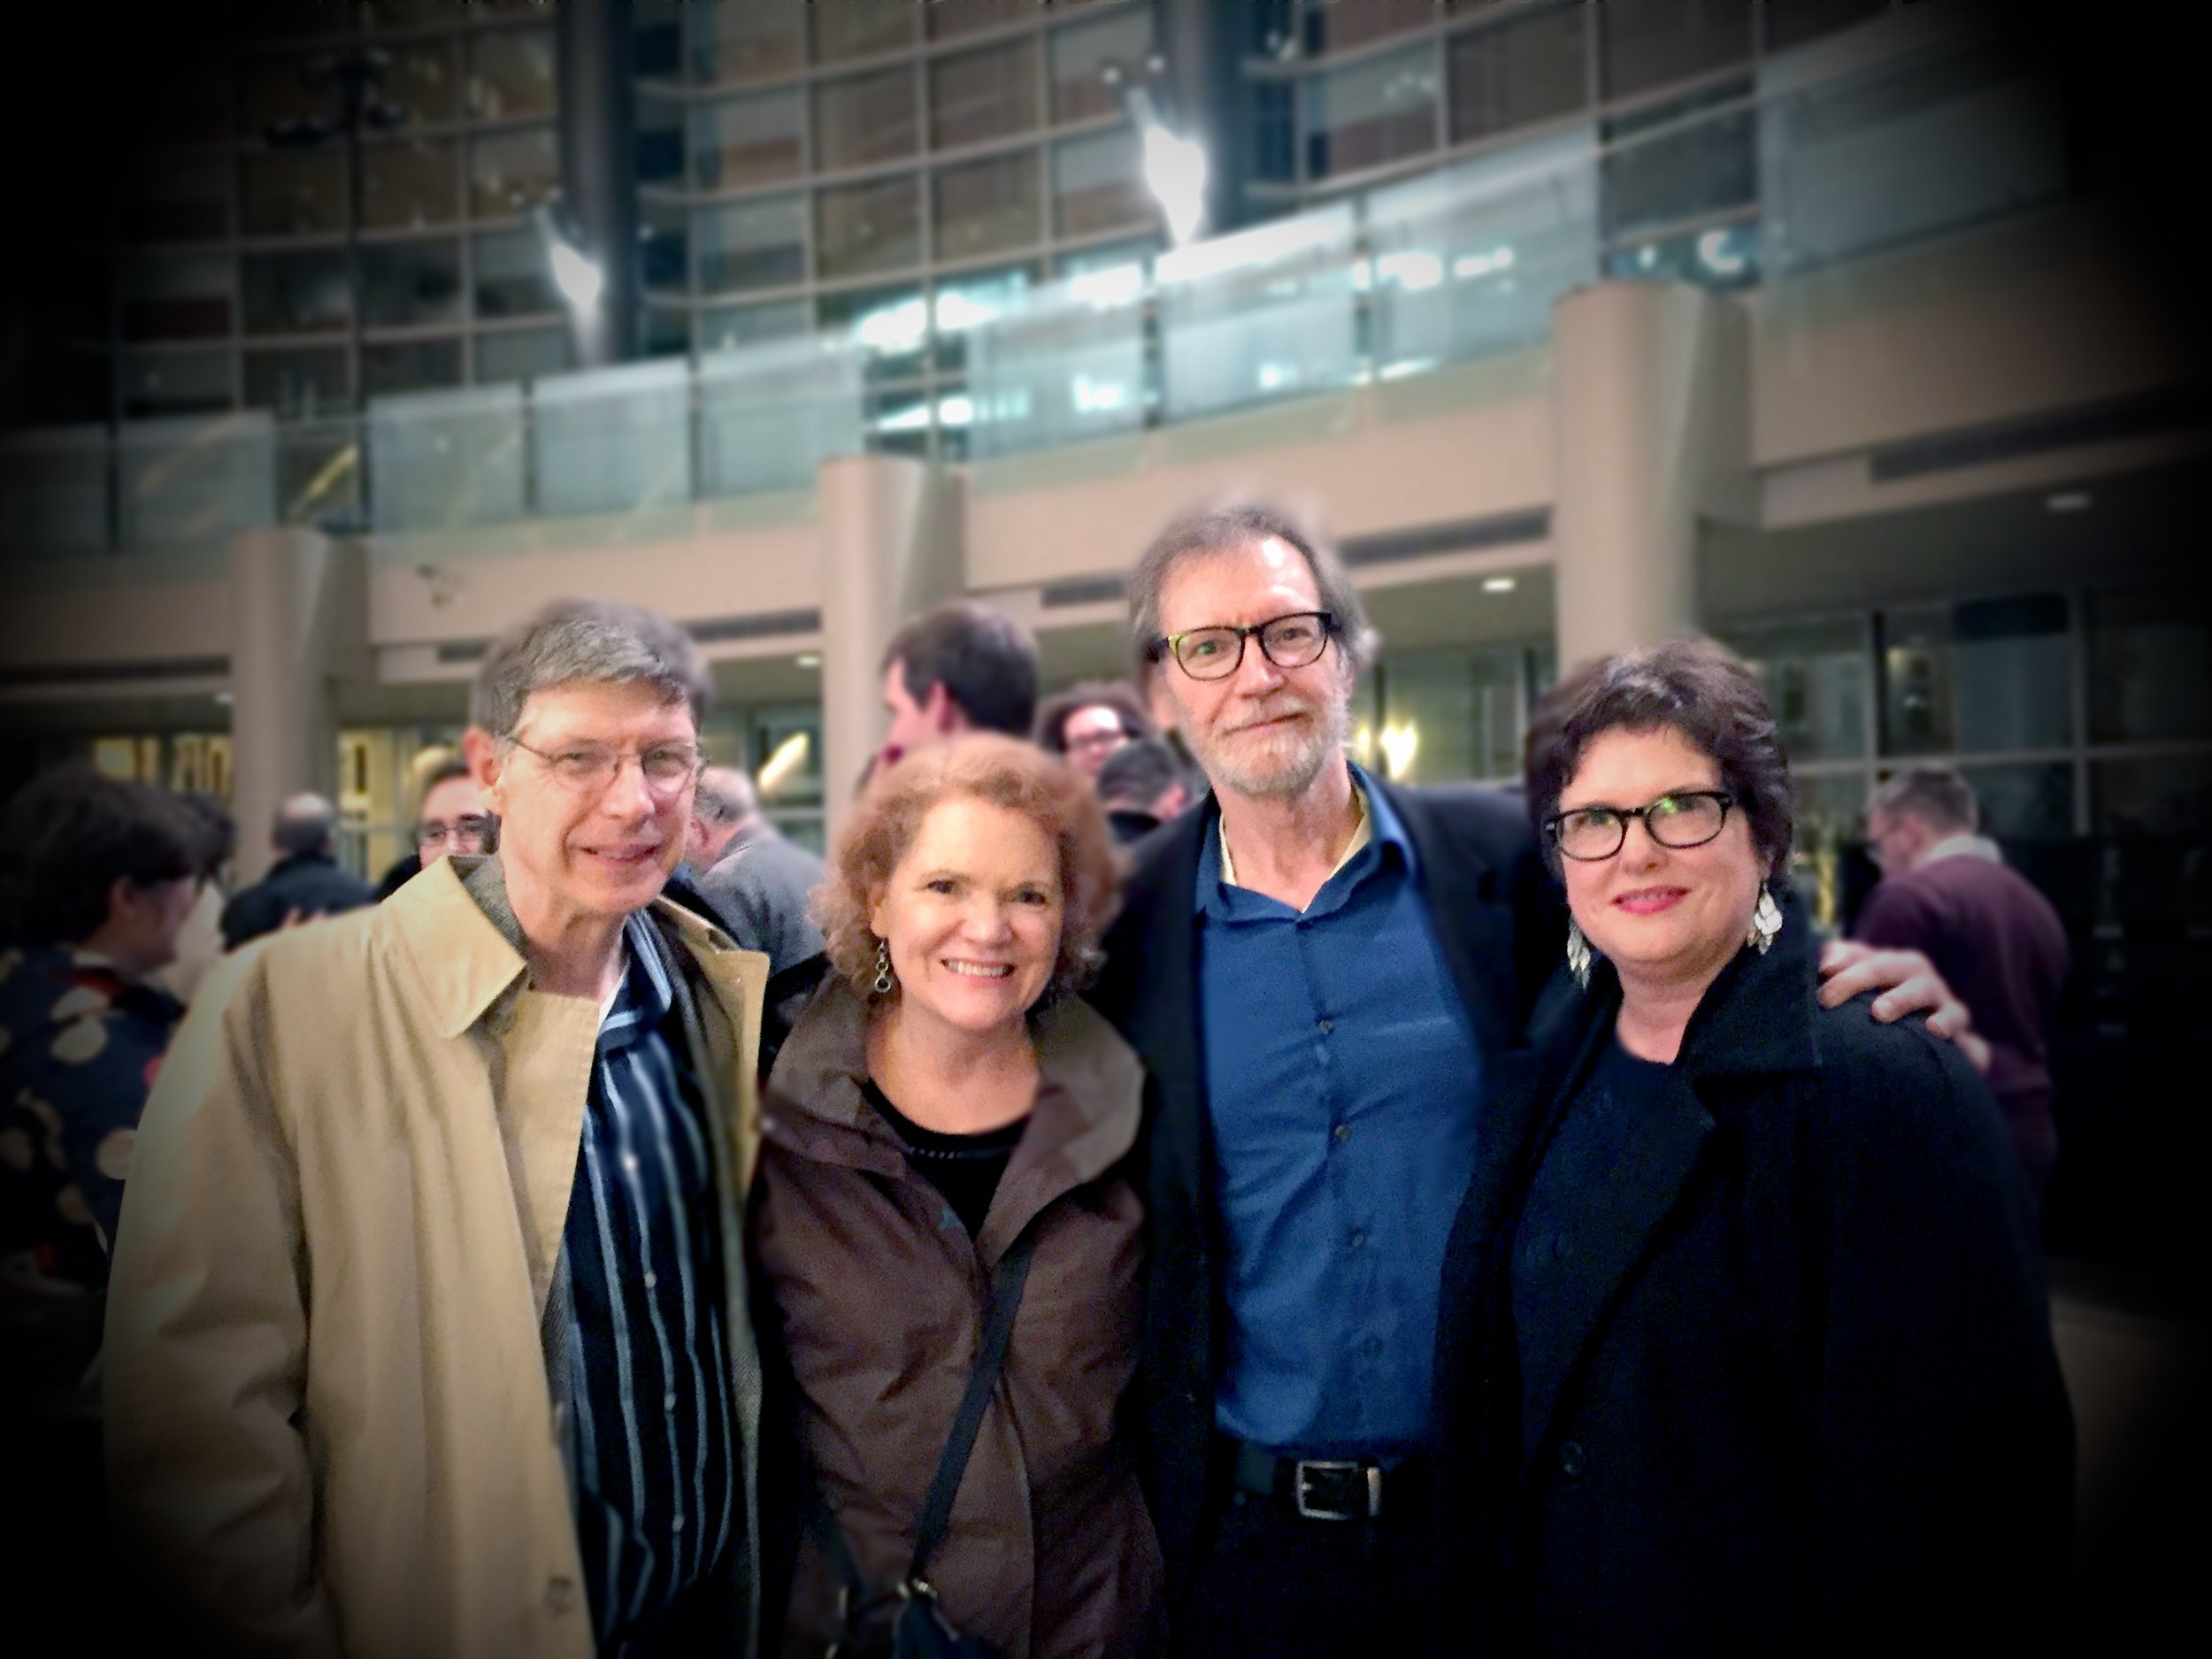 (Old friends, at Benaroya Hall for the Seattle Symphony, 2016. Ignore my eyes)